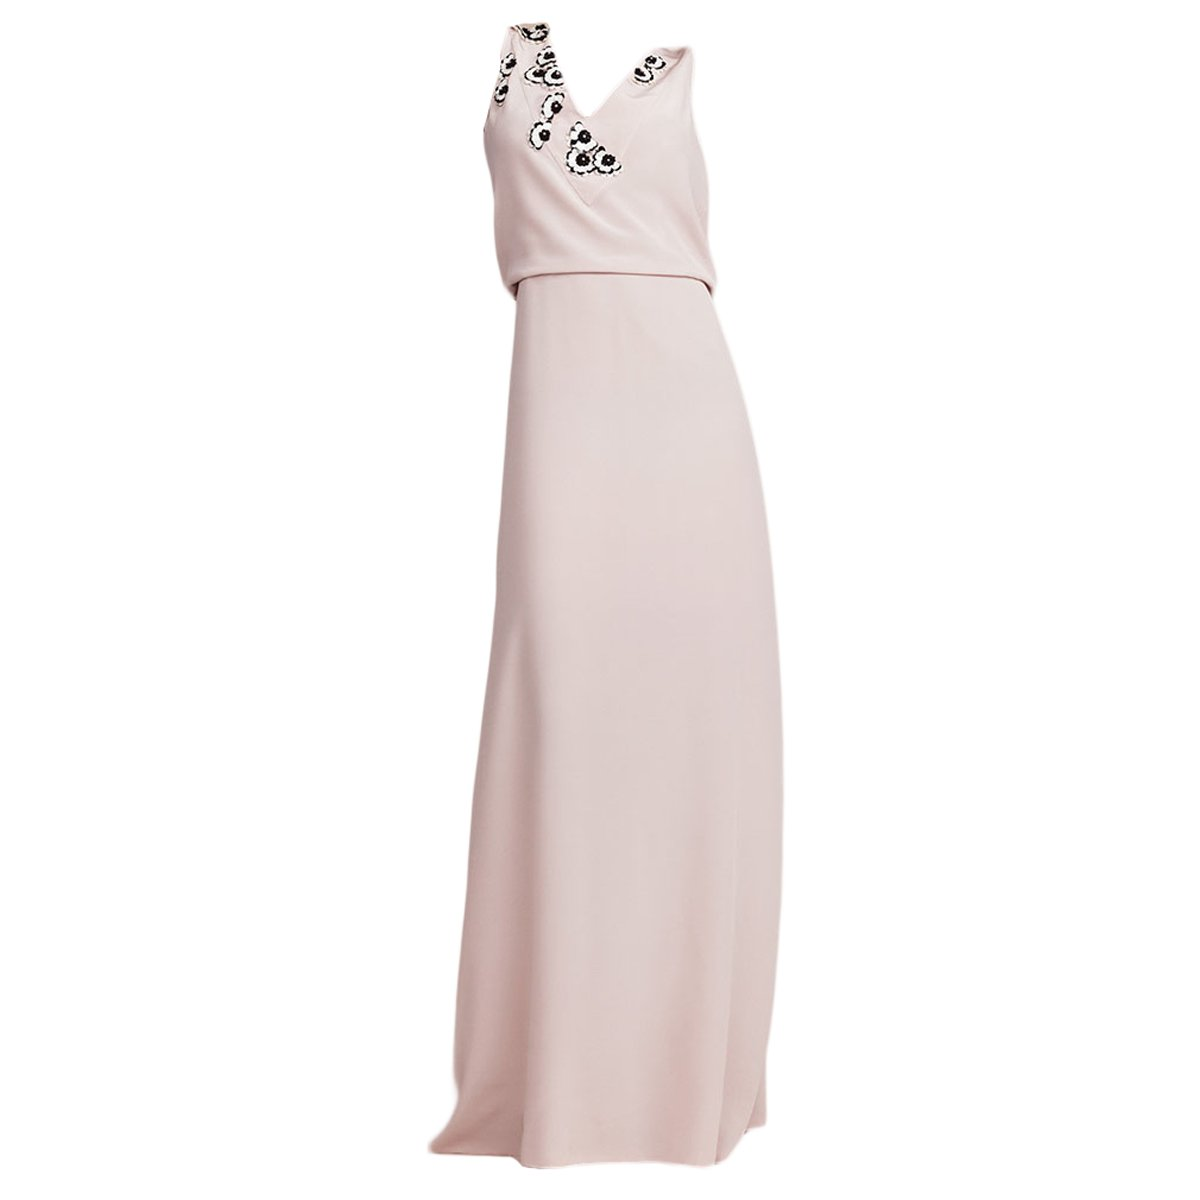 8485bc0ac6cee Women's Ermes Sequined Maxi Dress Sz 8 Pink at Amazon Women's Clothing  store: